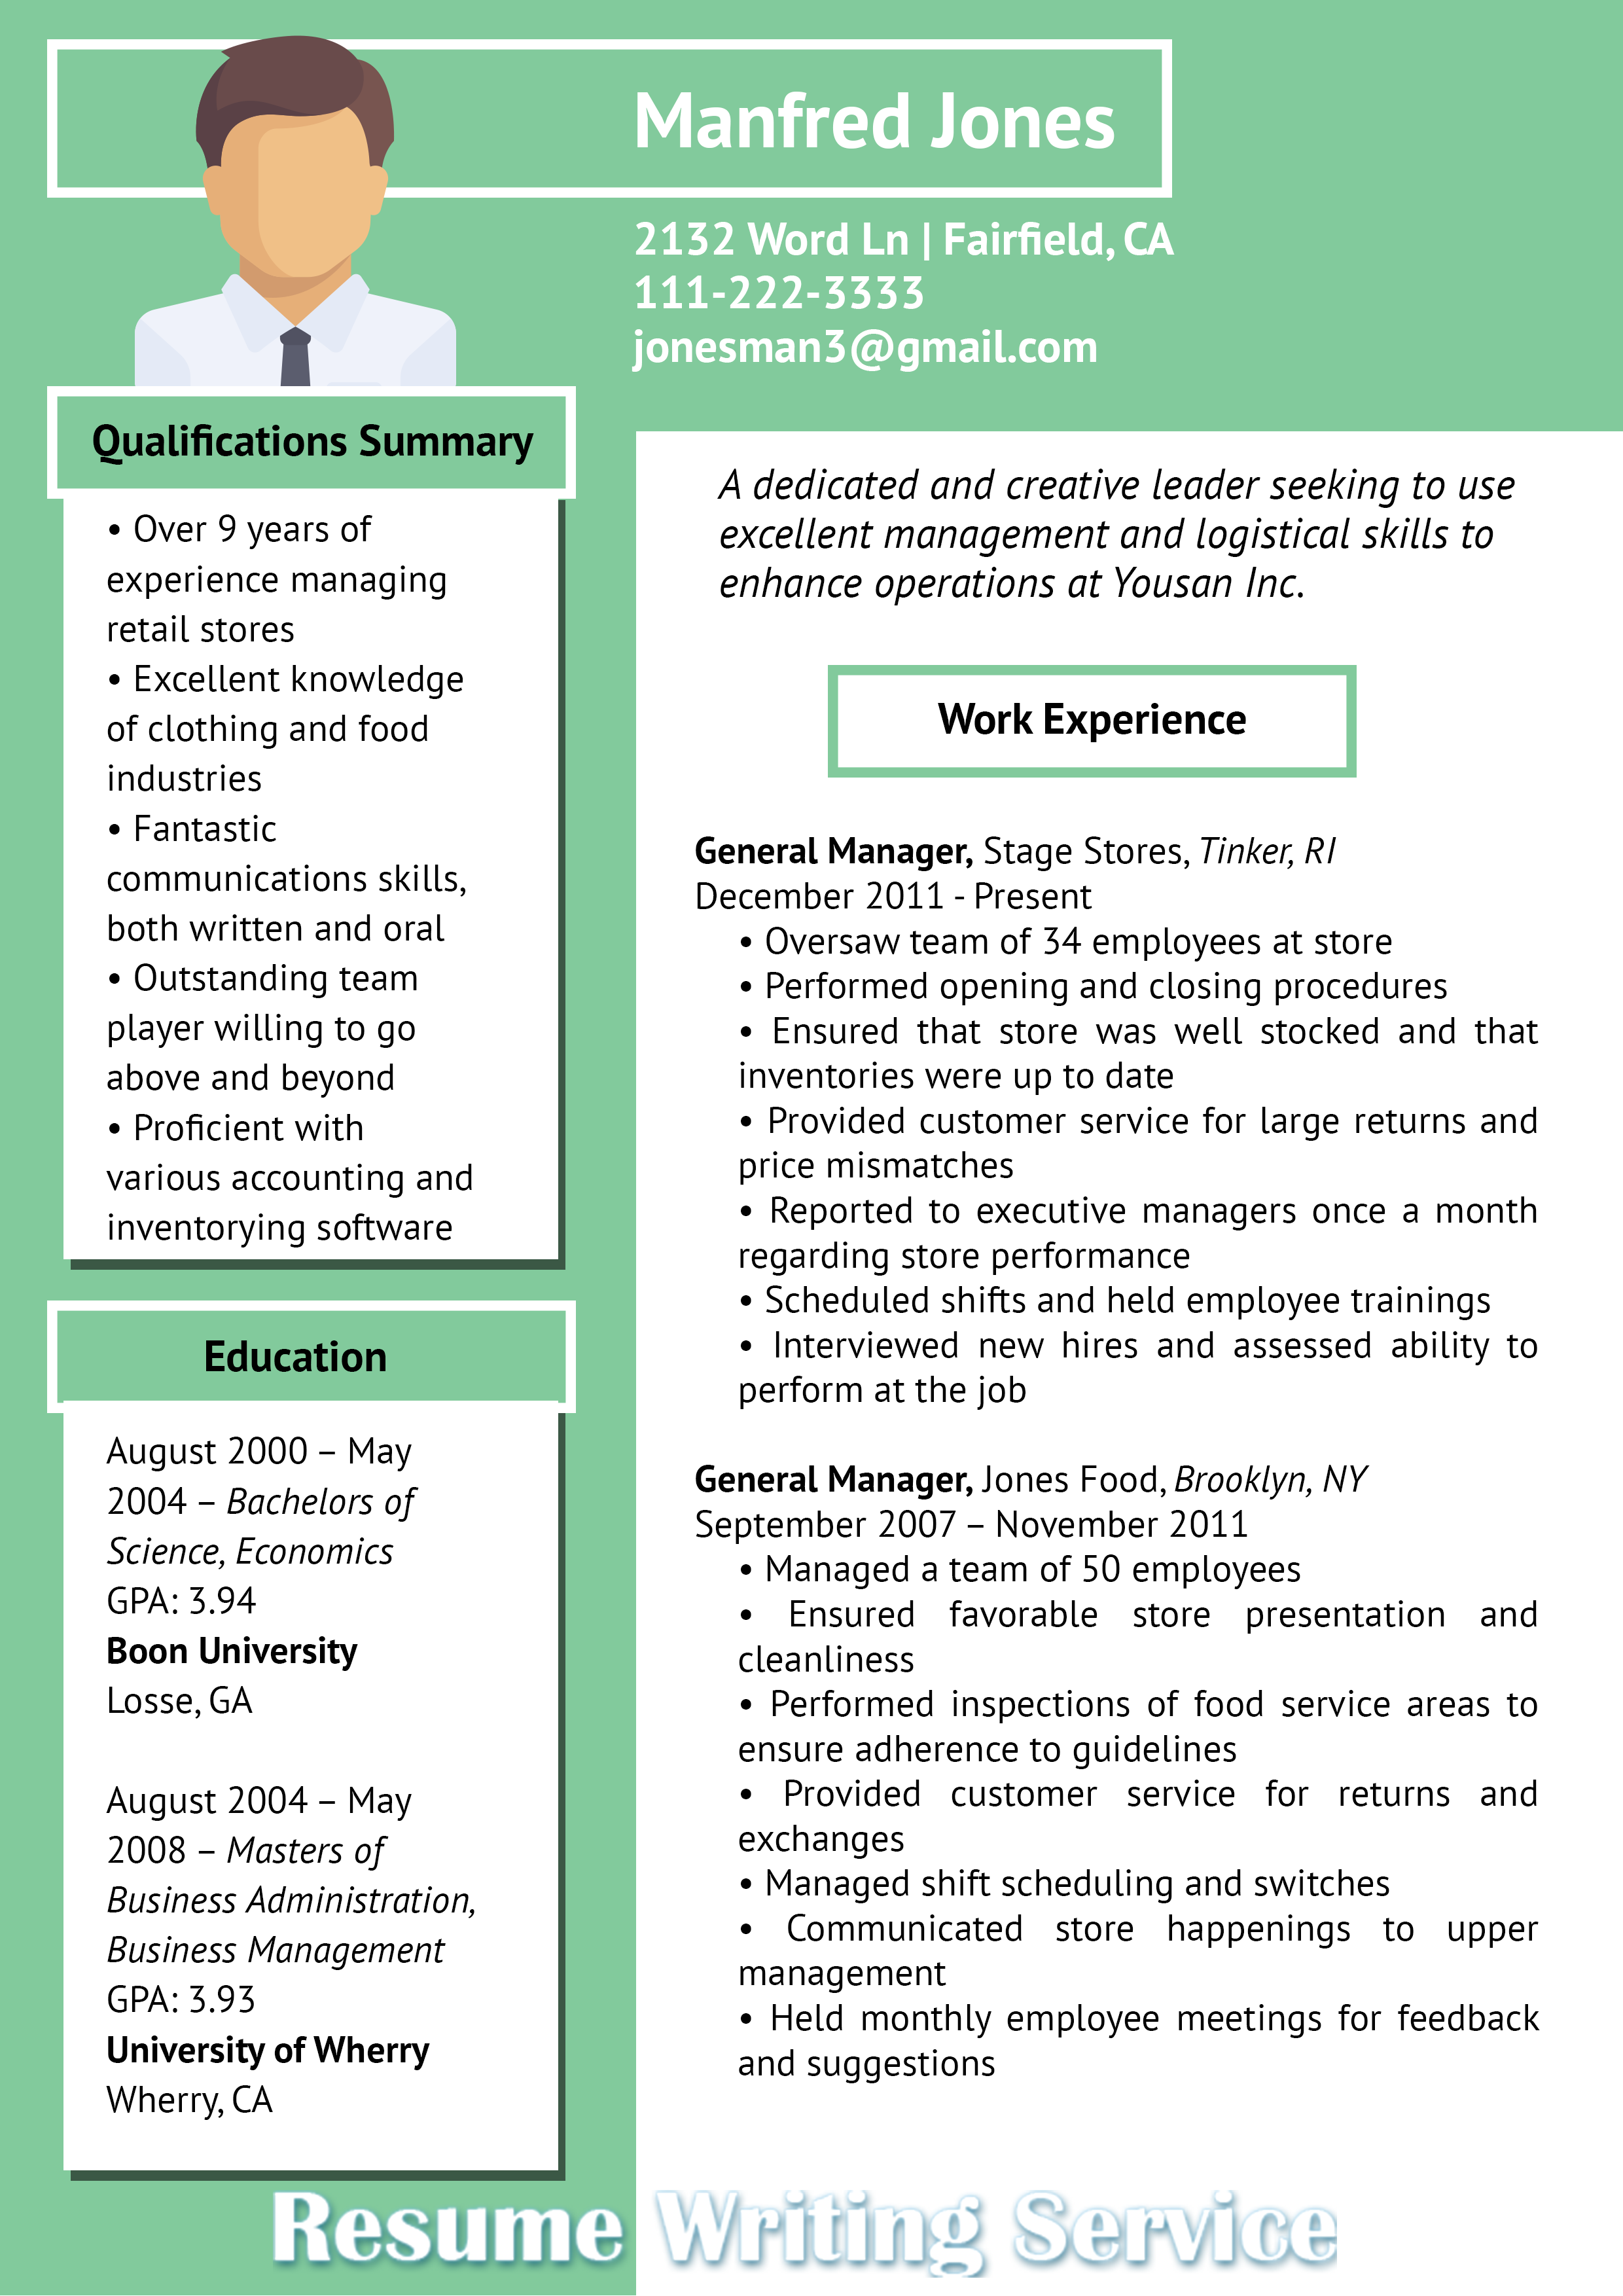 Check This Functional Resume Example And See What You Need To